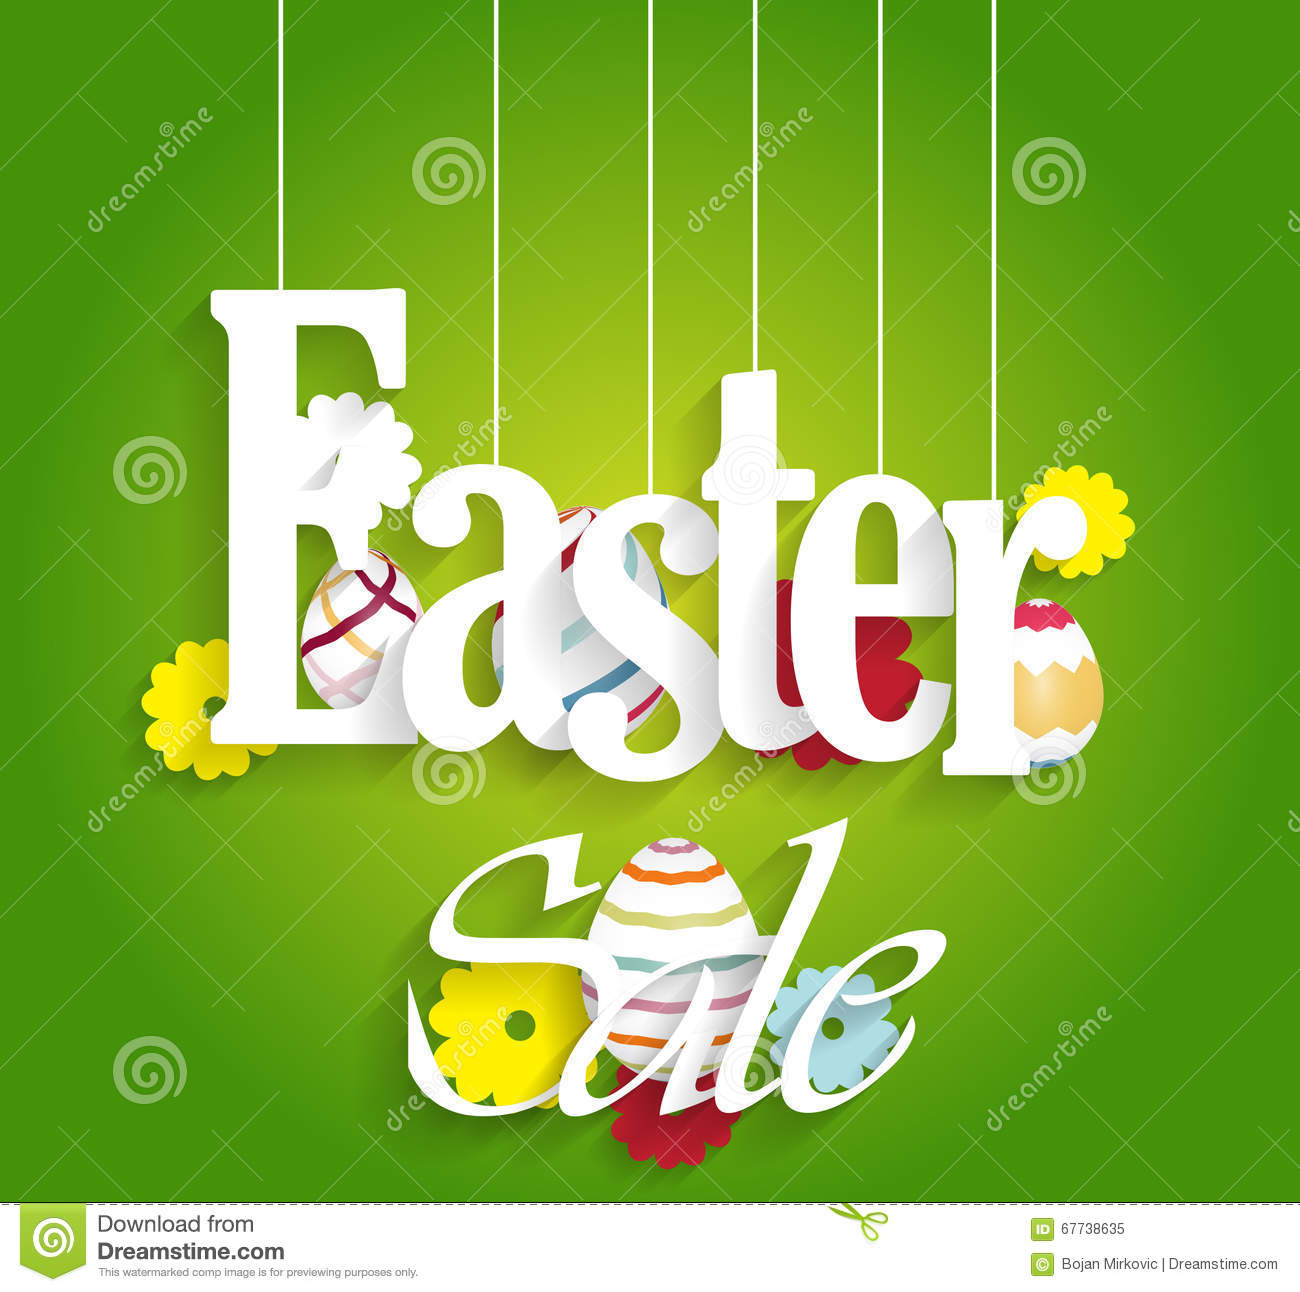 Easter Sale: Easter Sale Poster With Eggs And Flowers Stock Vector